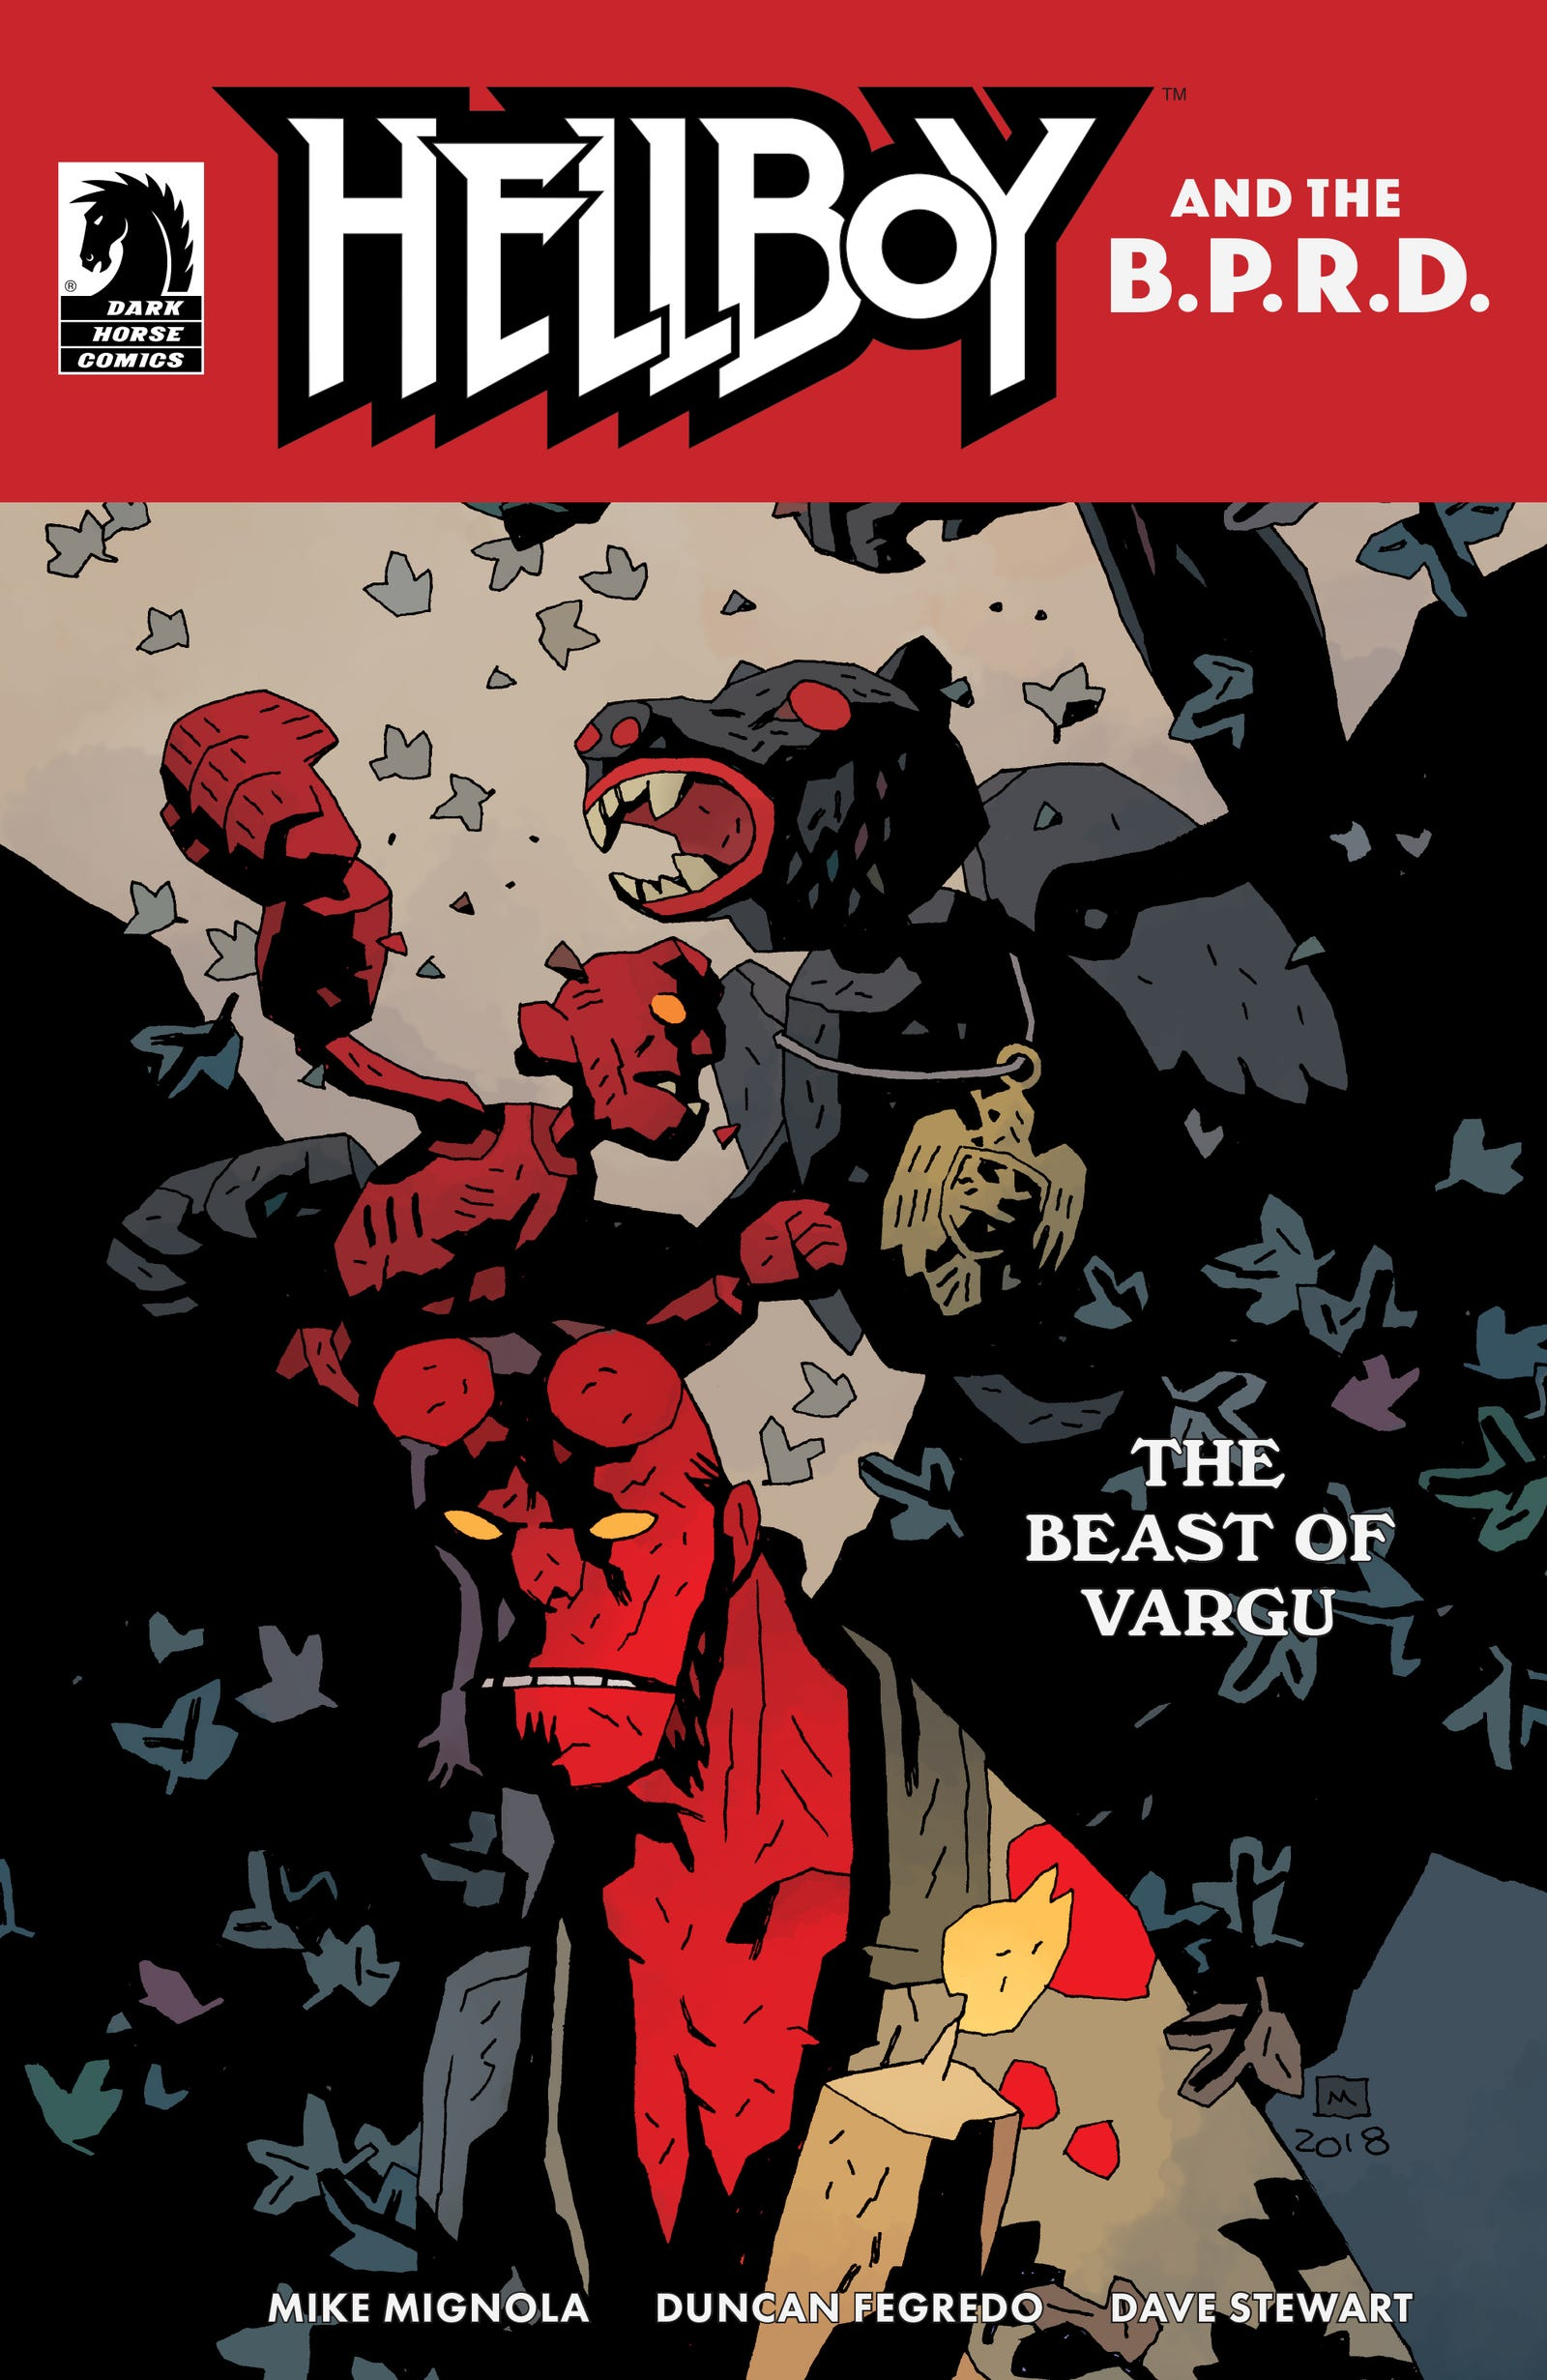 Variant by Mike Mignola